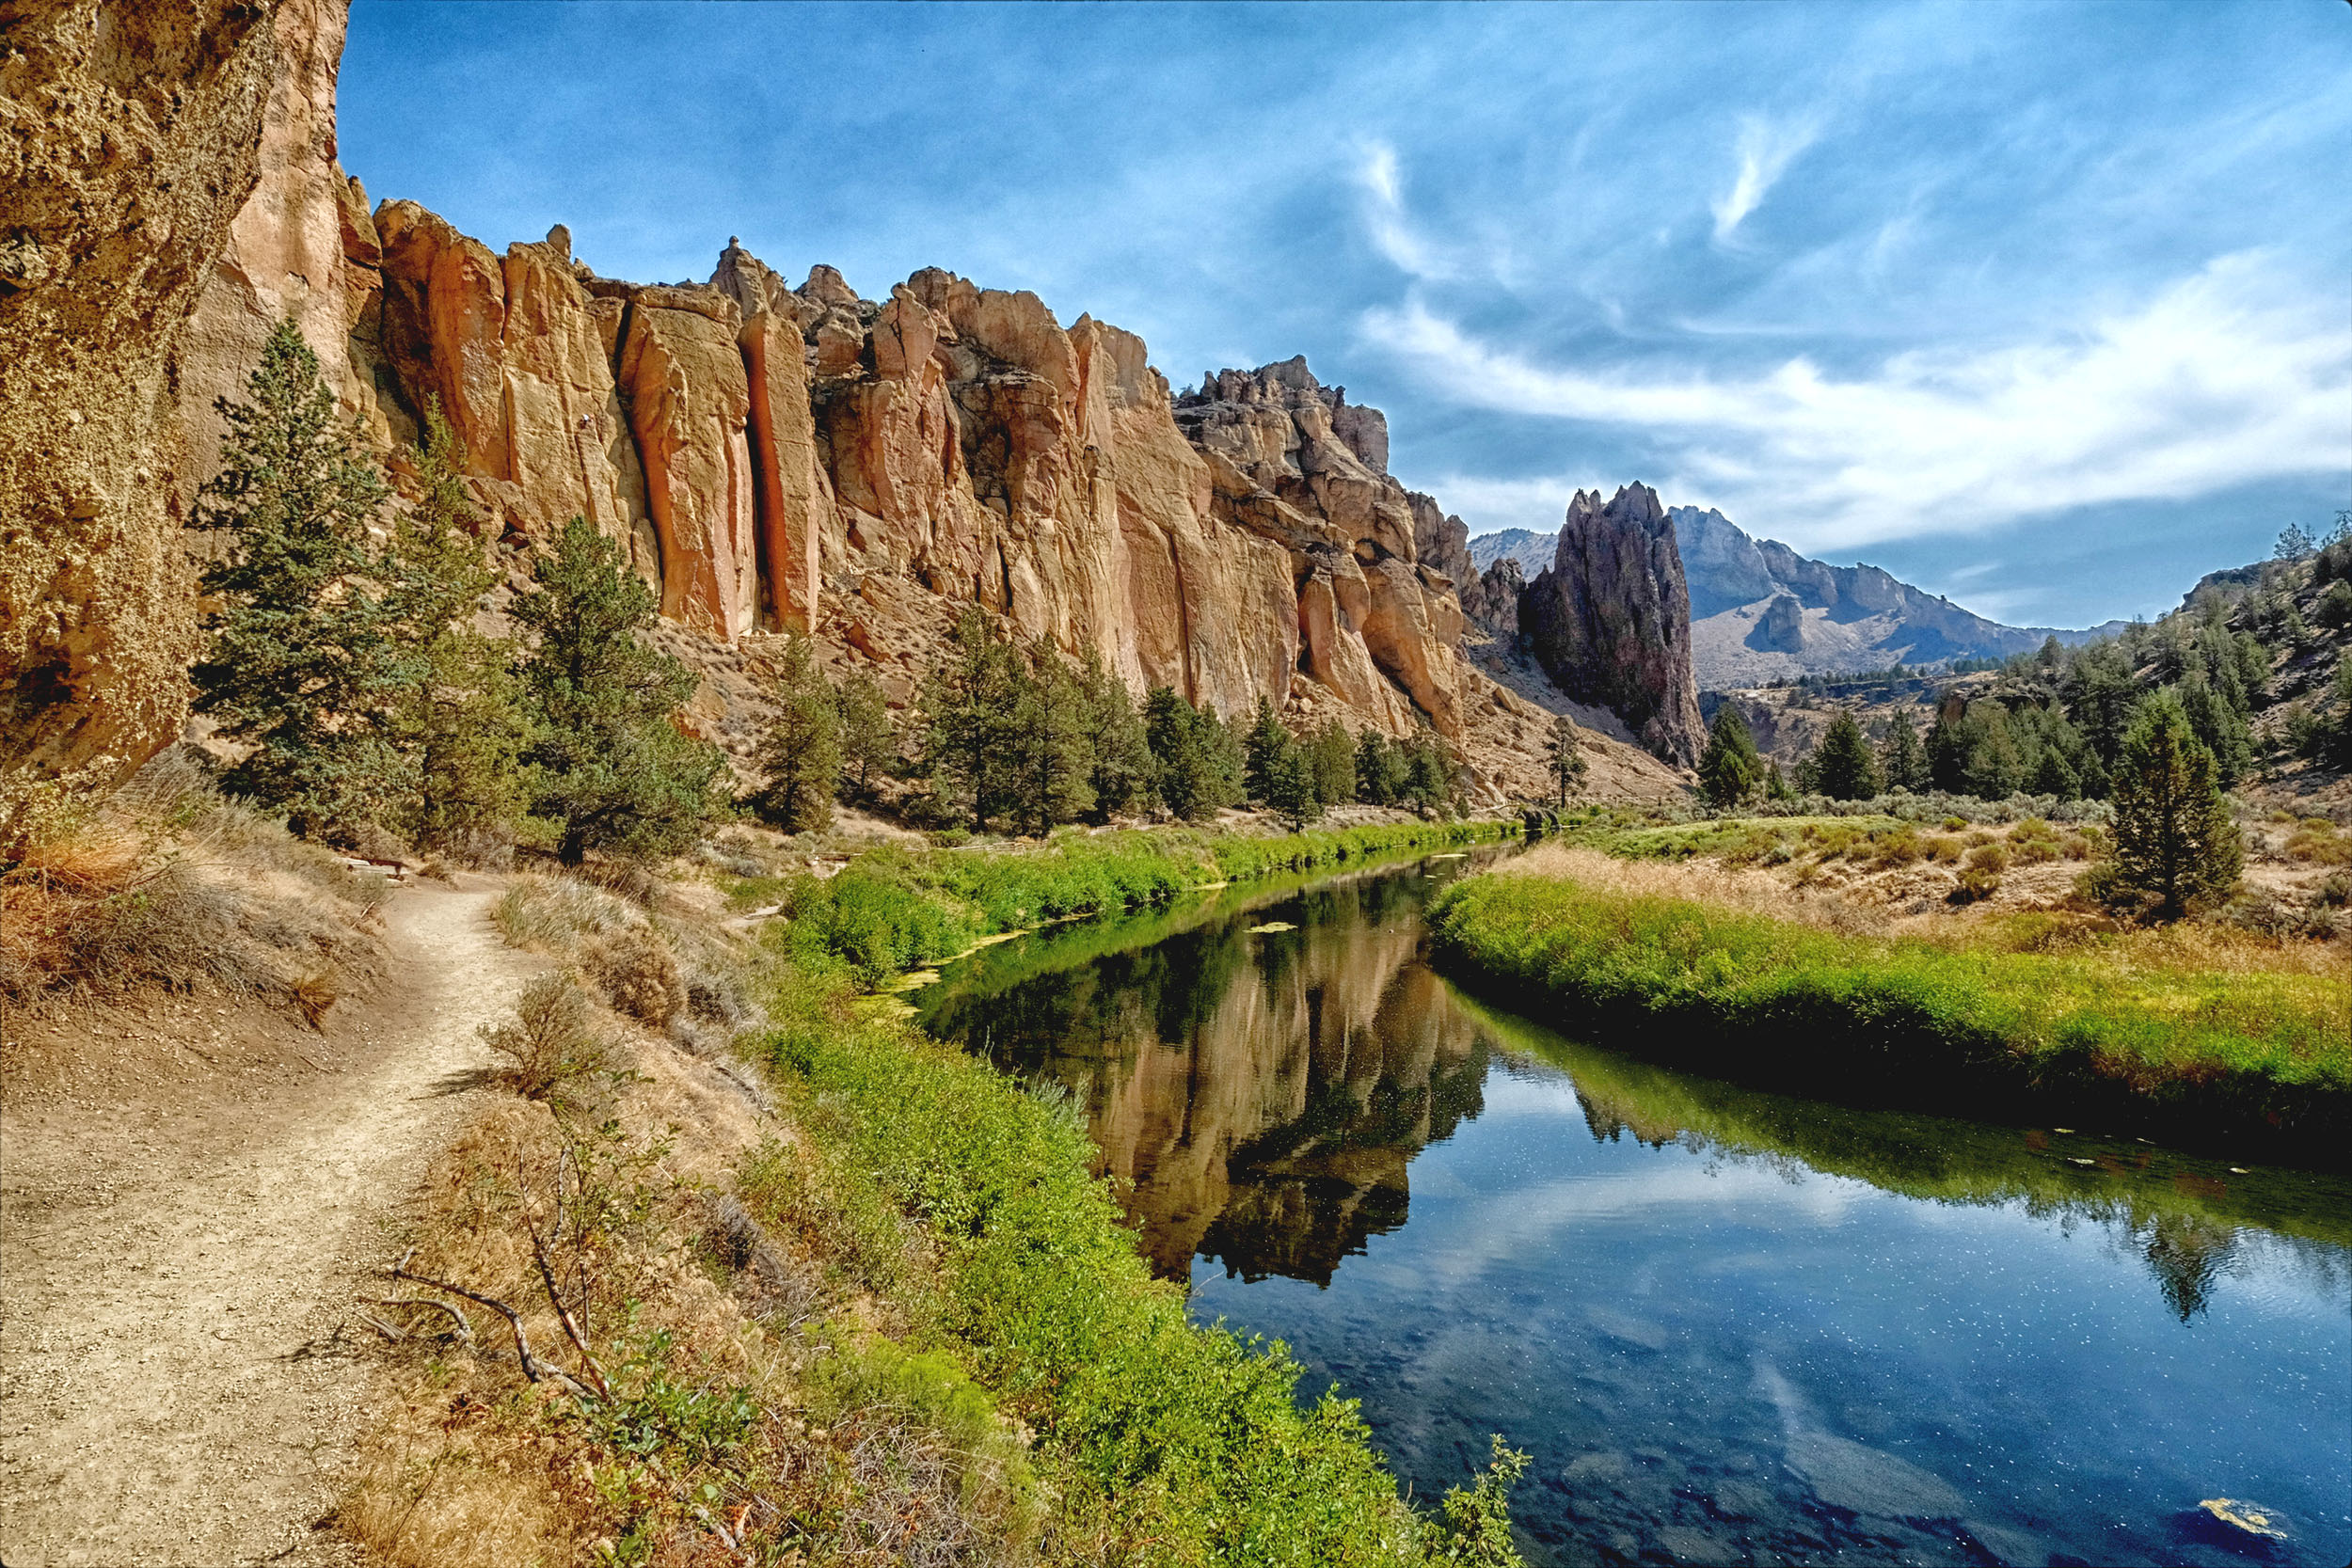 A river cutting through the landscape in front of craggy cliffs at Smith Rock State Park in Bend, Oregon